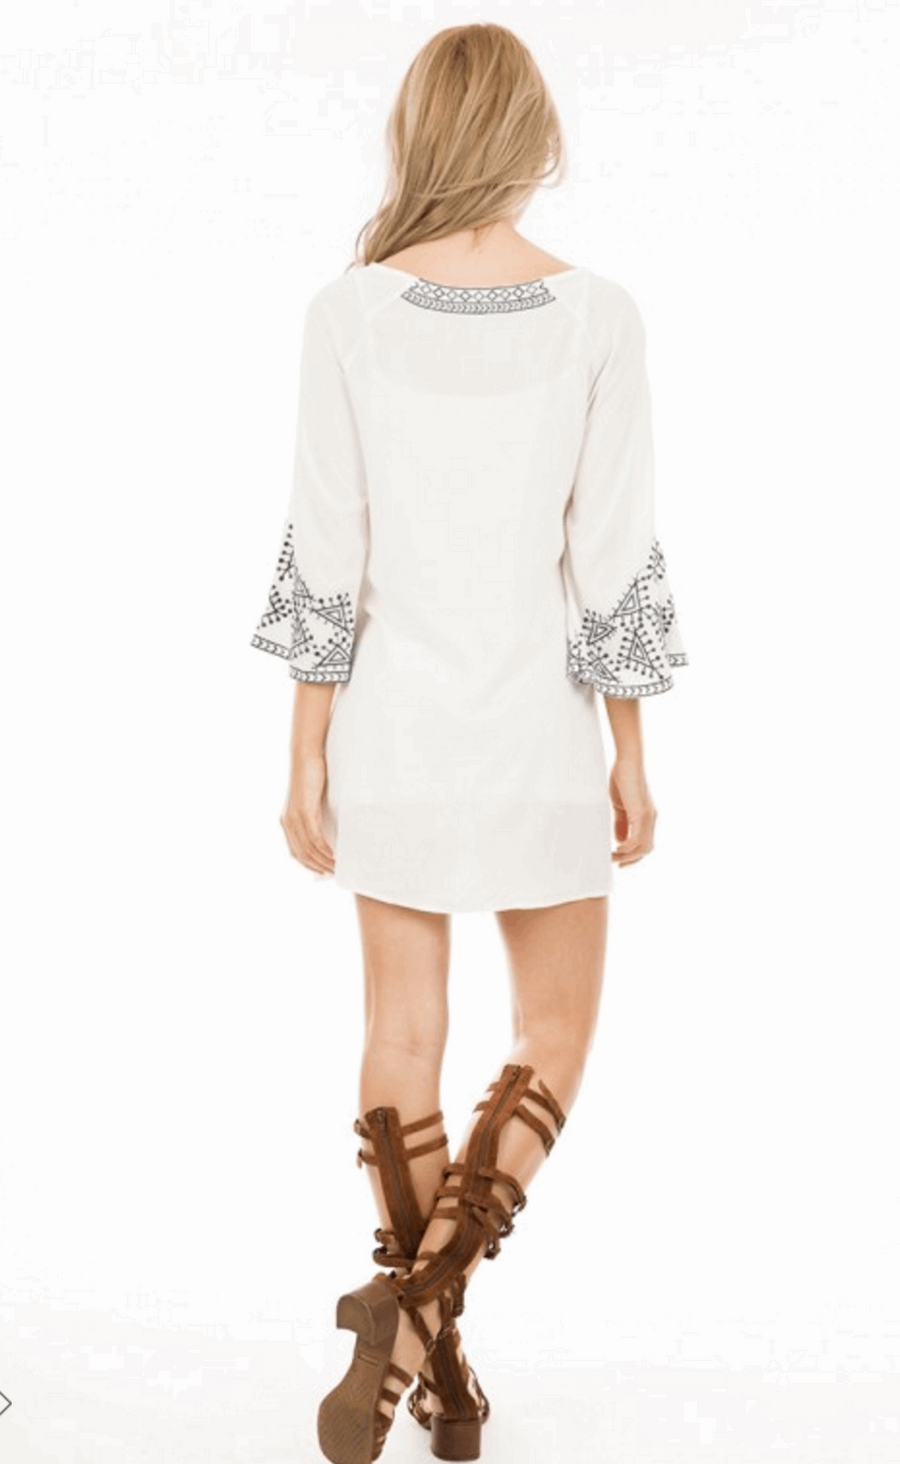 Embroidered Dress with 3/4 Bell Sleeves in Off White from Monoreno | Beauty Cafe - 3